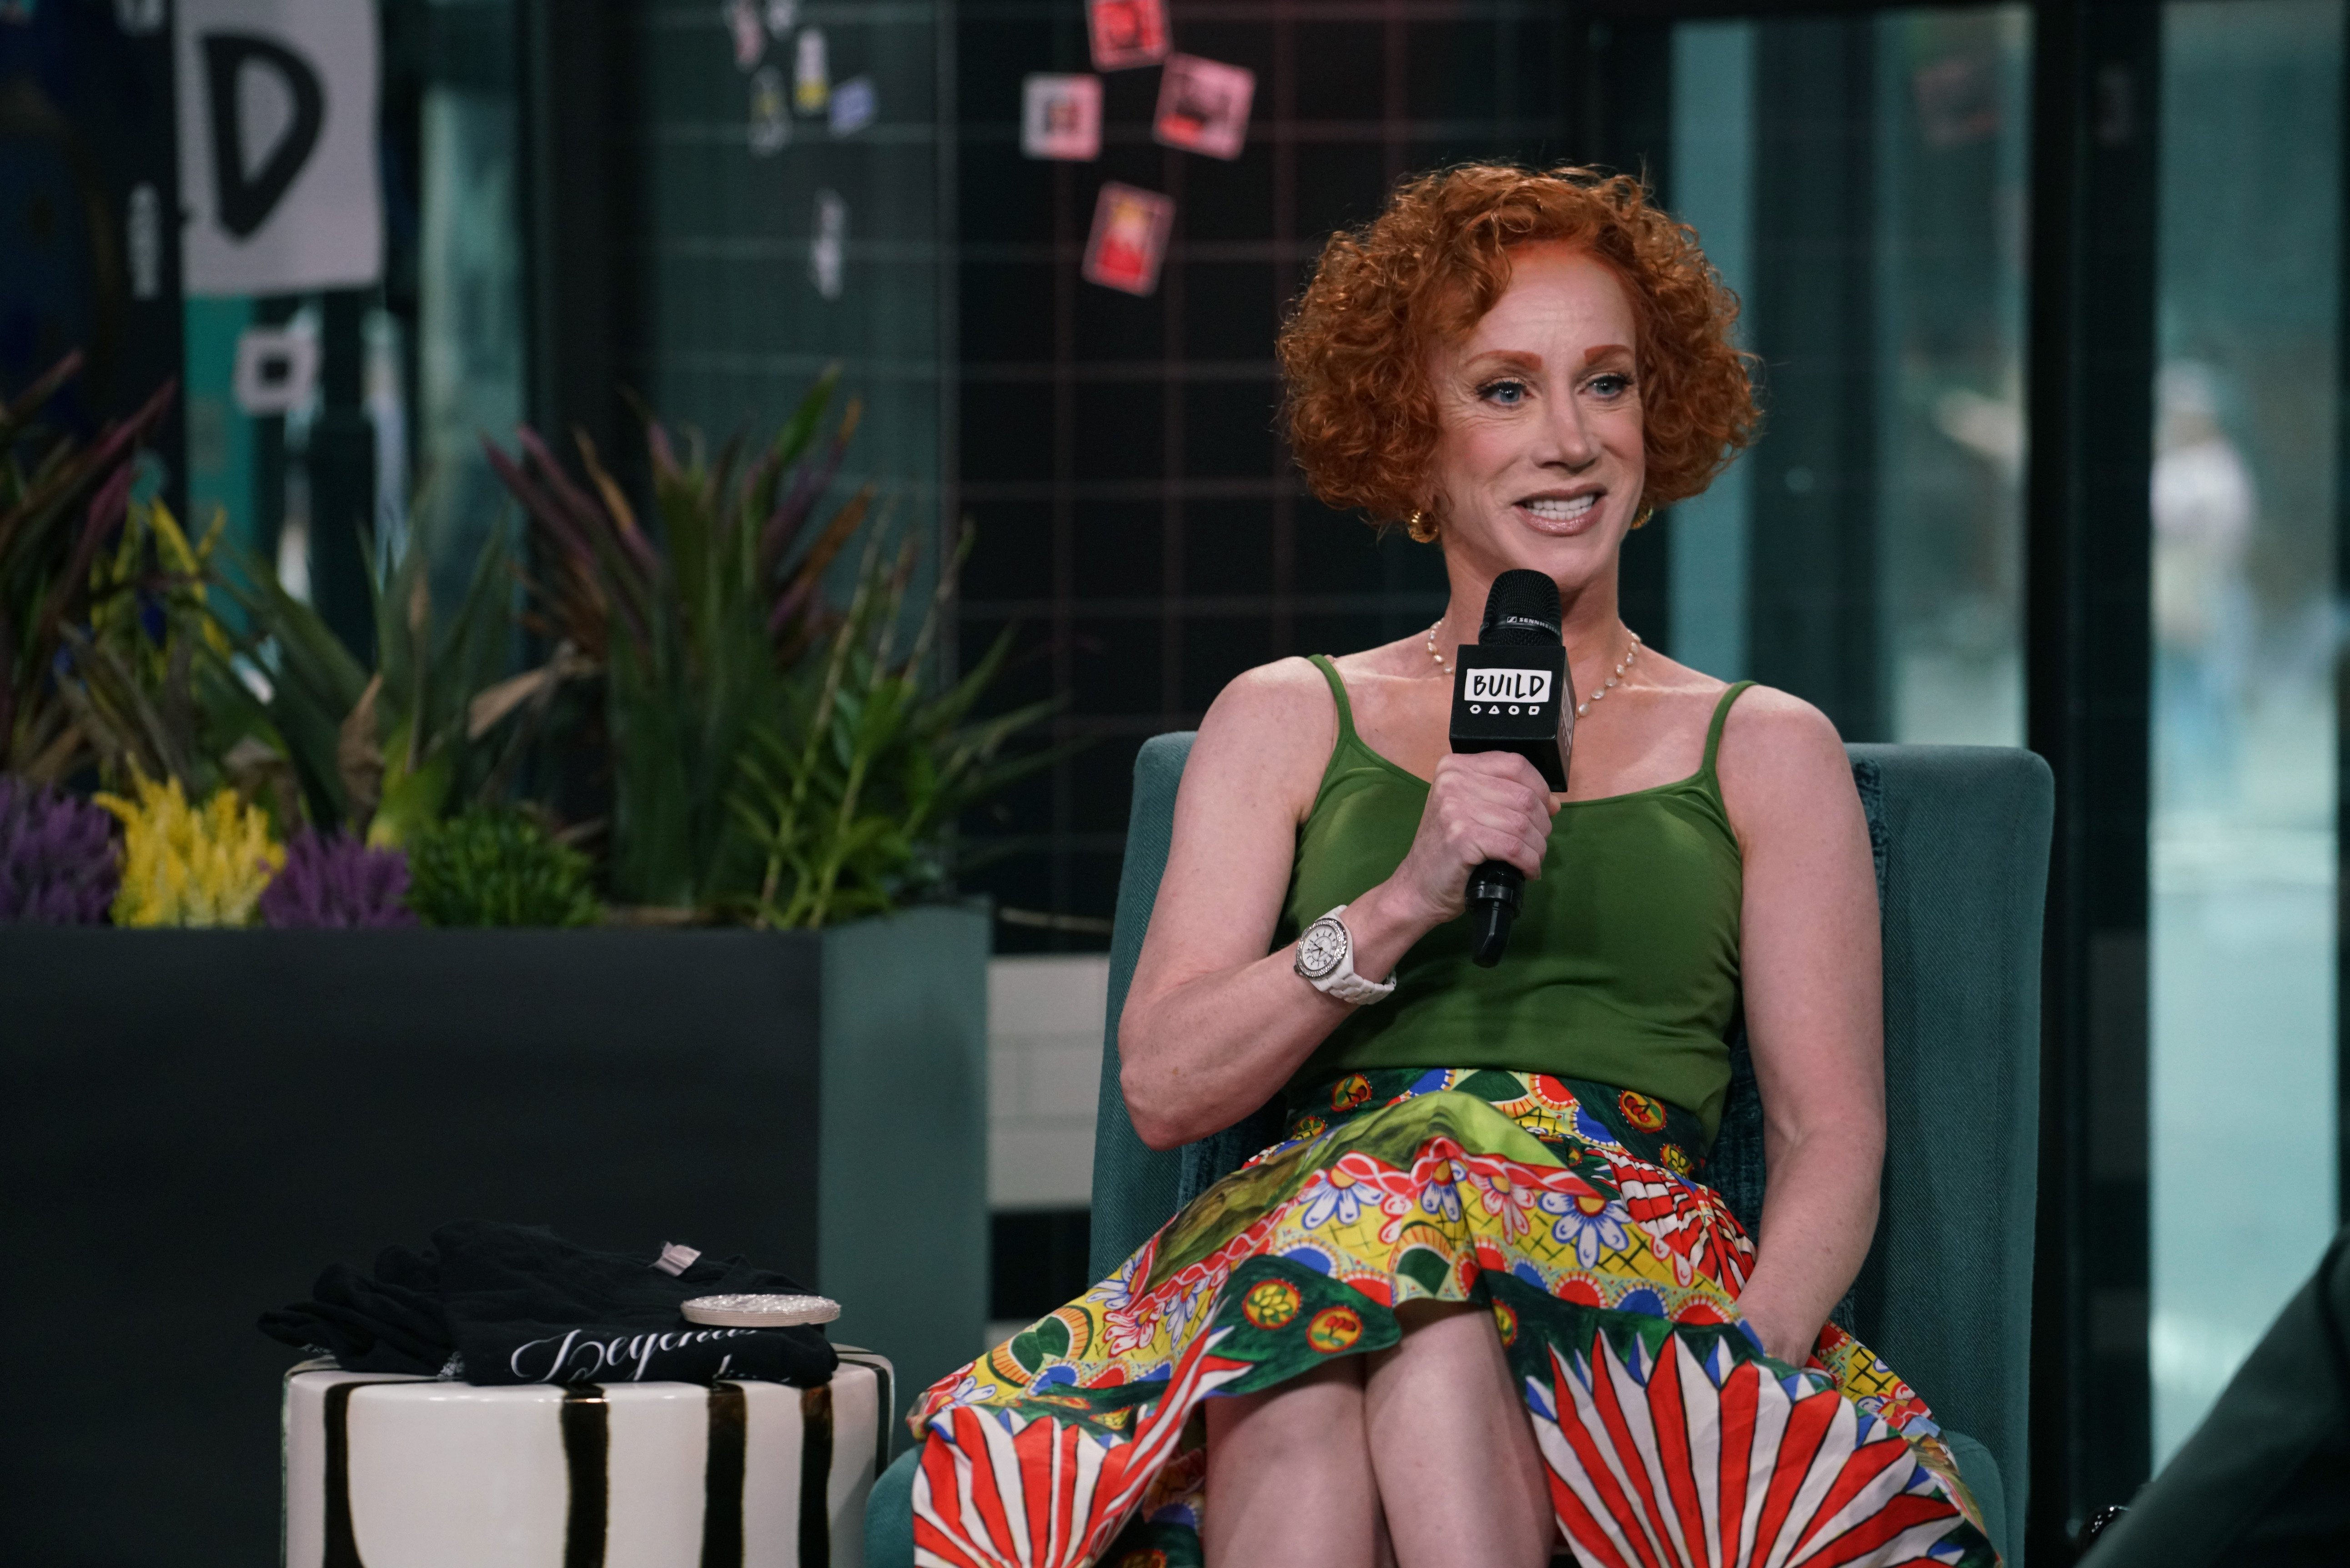 Kathy Griffin attends Build Series to talk about her new film 'Kathy Griffin: A Hell of a Story' at Build Studio on July 18, 2019 in New York City   Photo: Getty Images